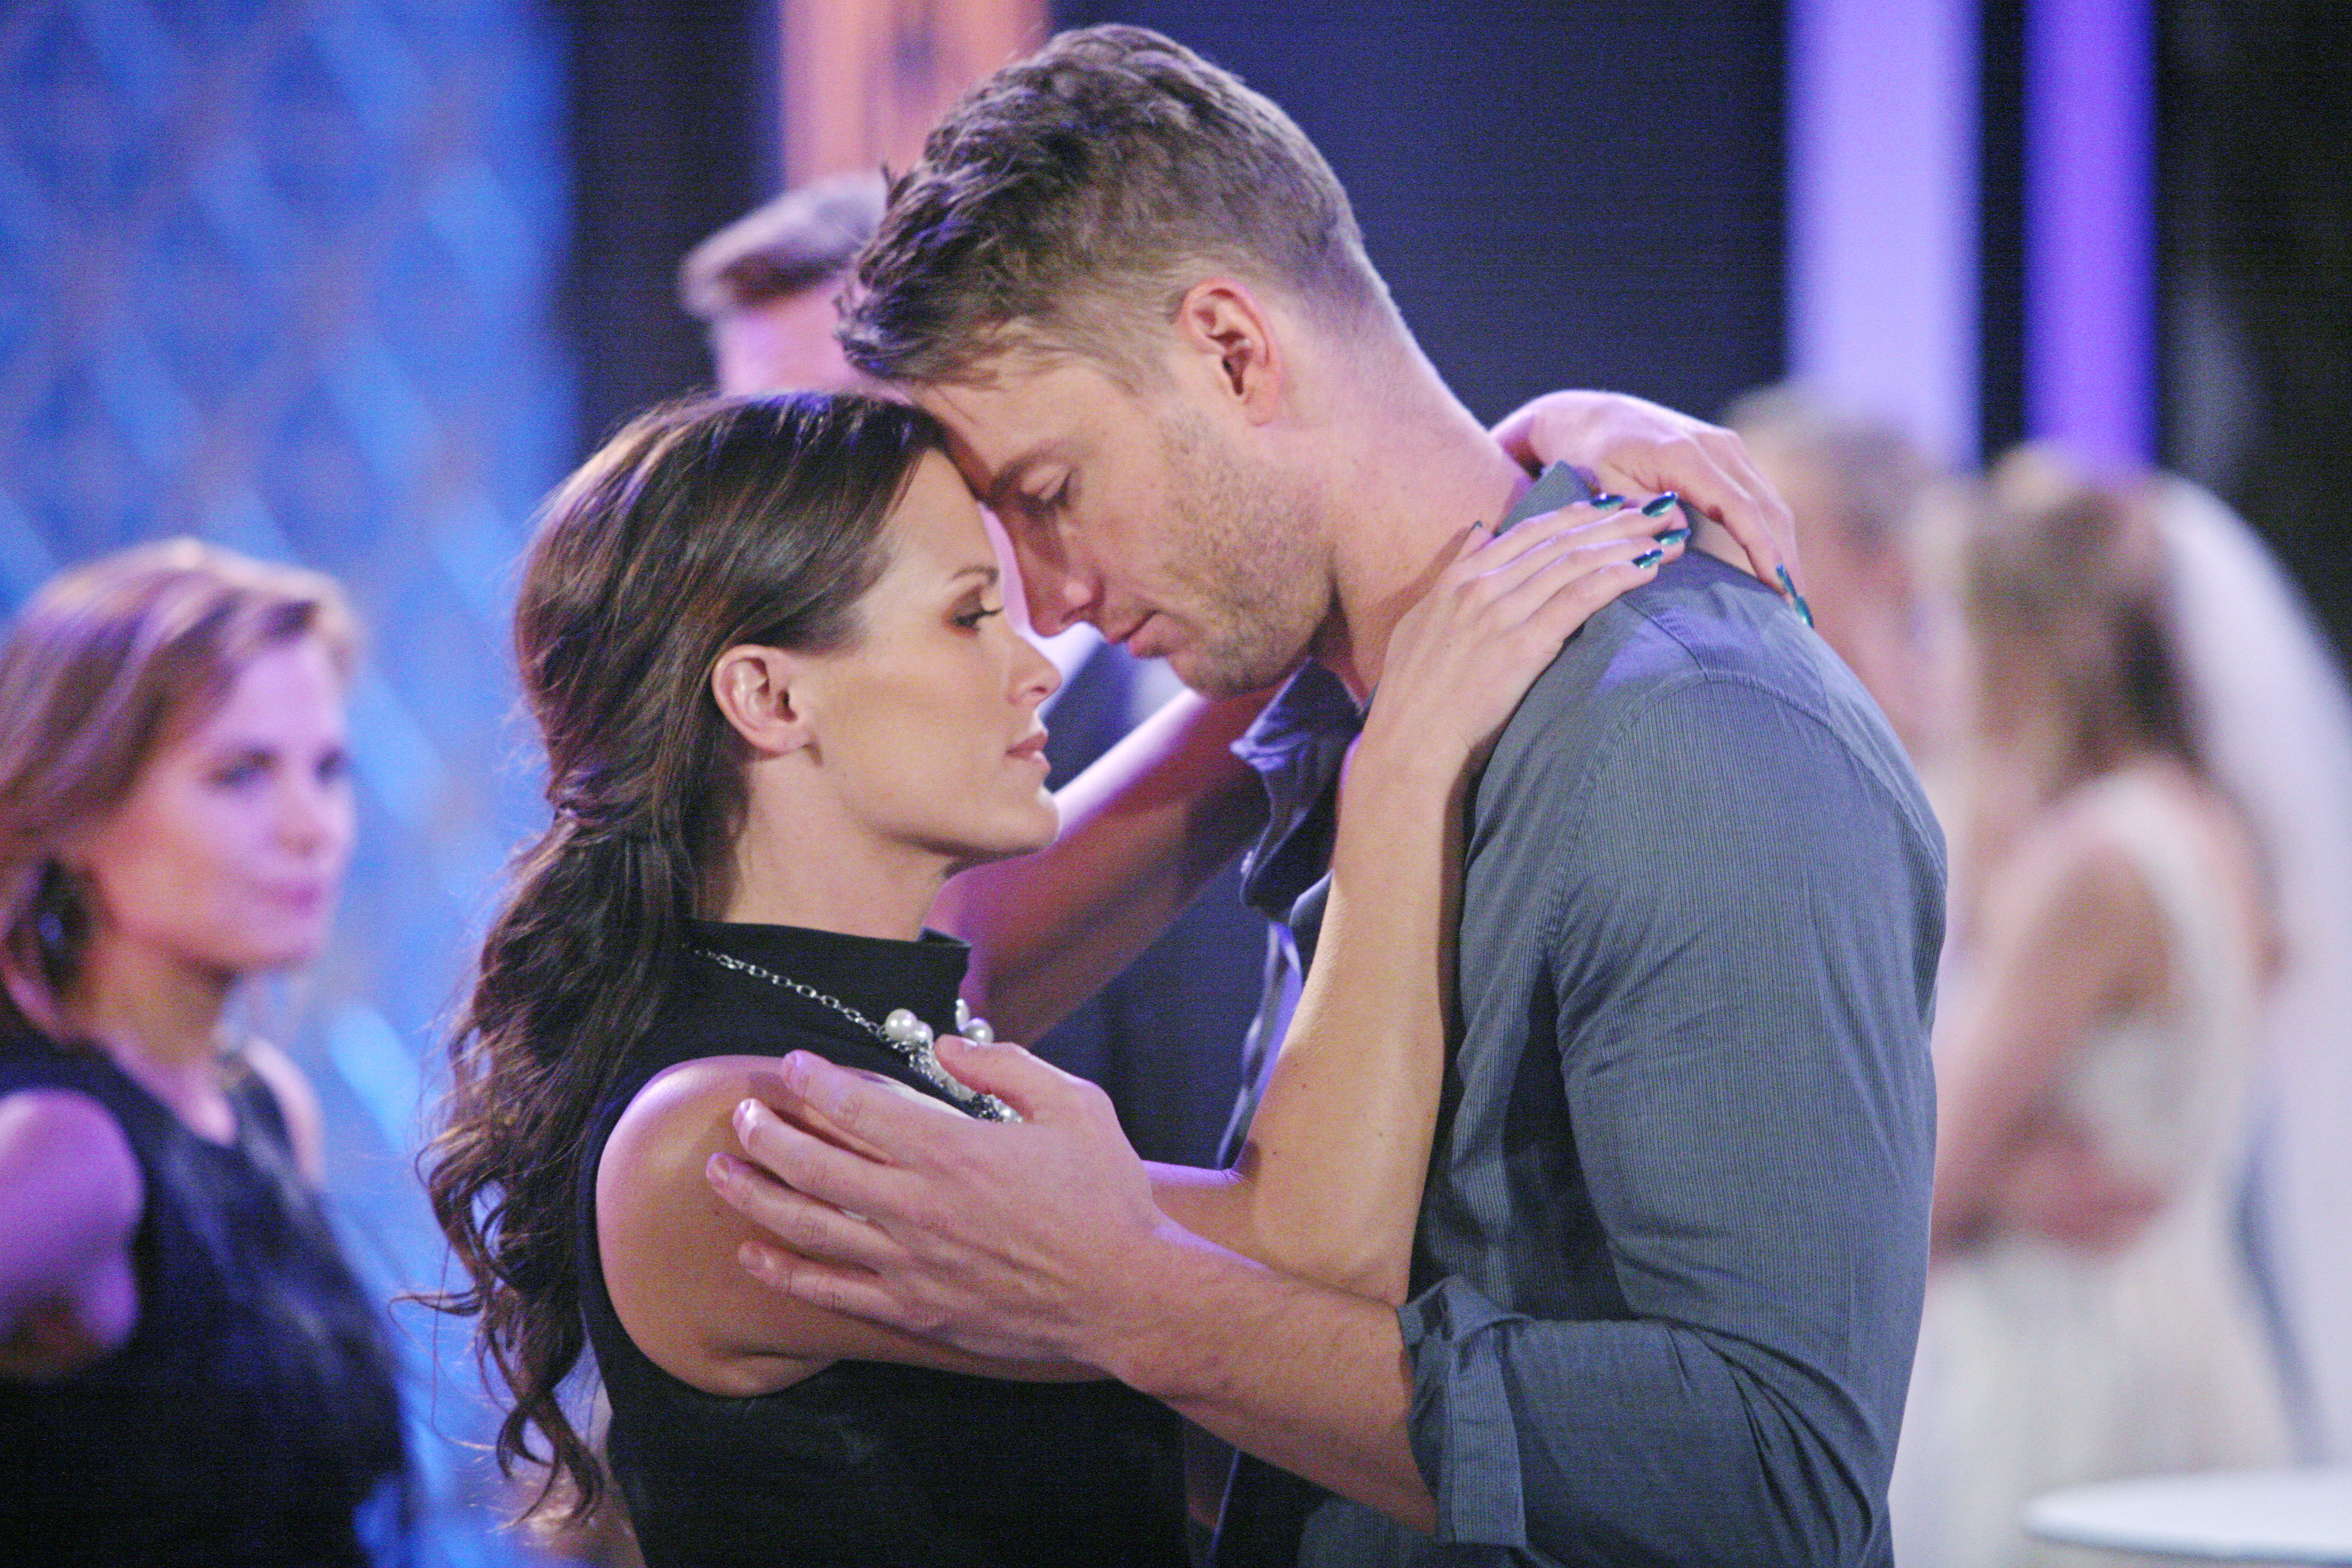 Chelsea And Adam S Most Intense Moments On Y R The Young And The Restless Photos Cbs Com